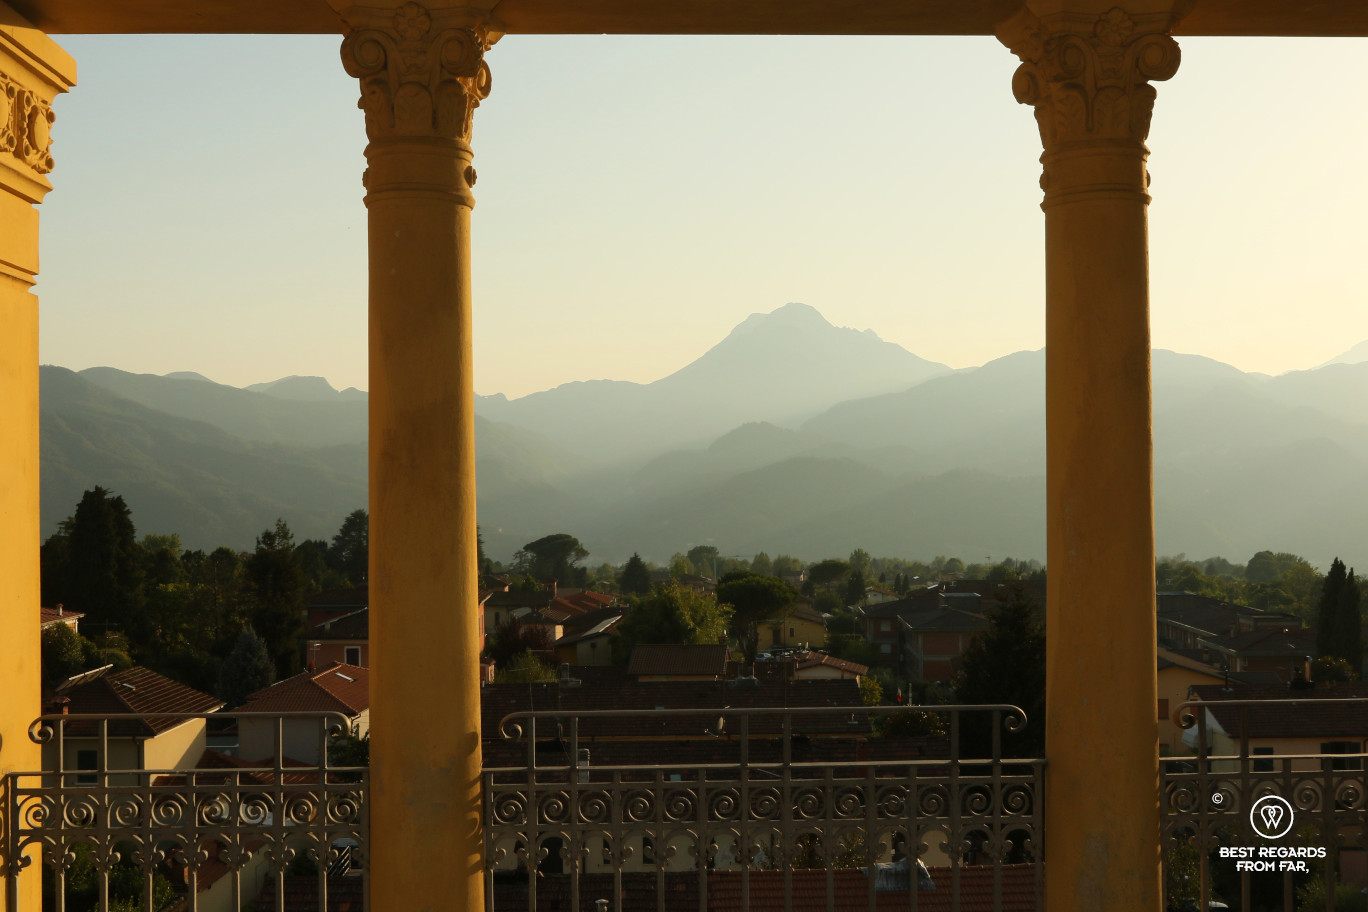 The view from Barga on the surrounding mountains at sunset, Italy.